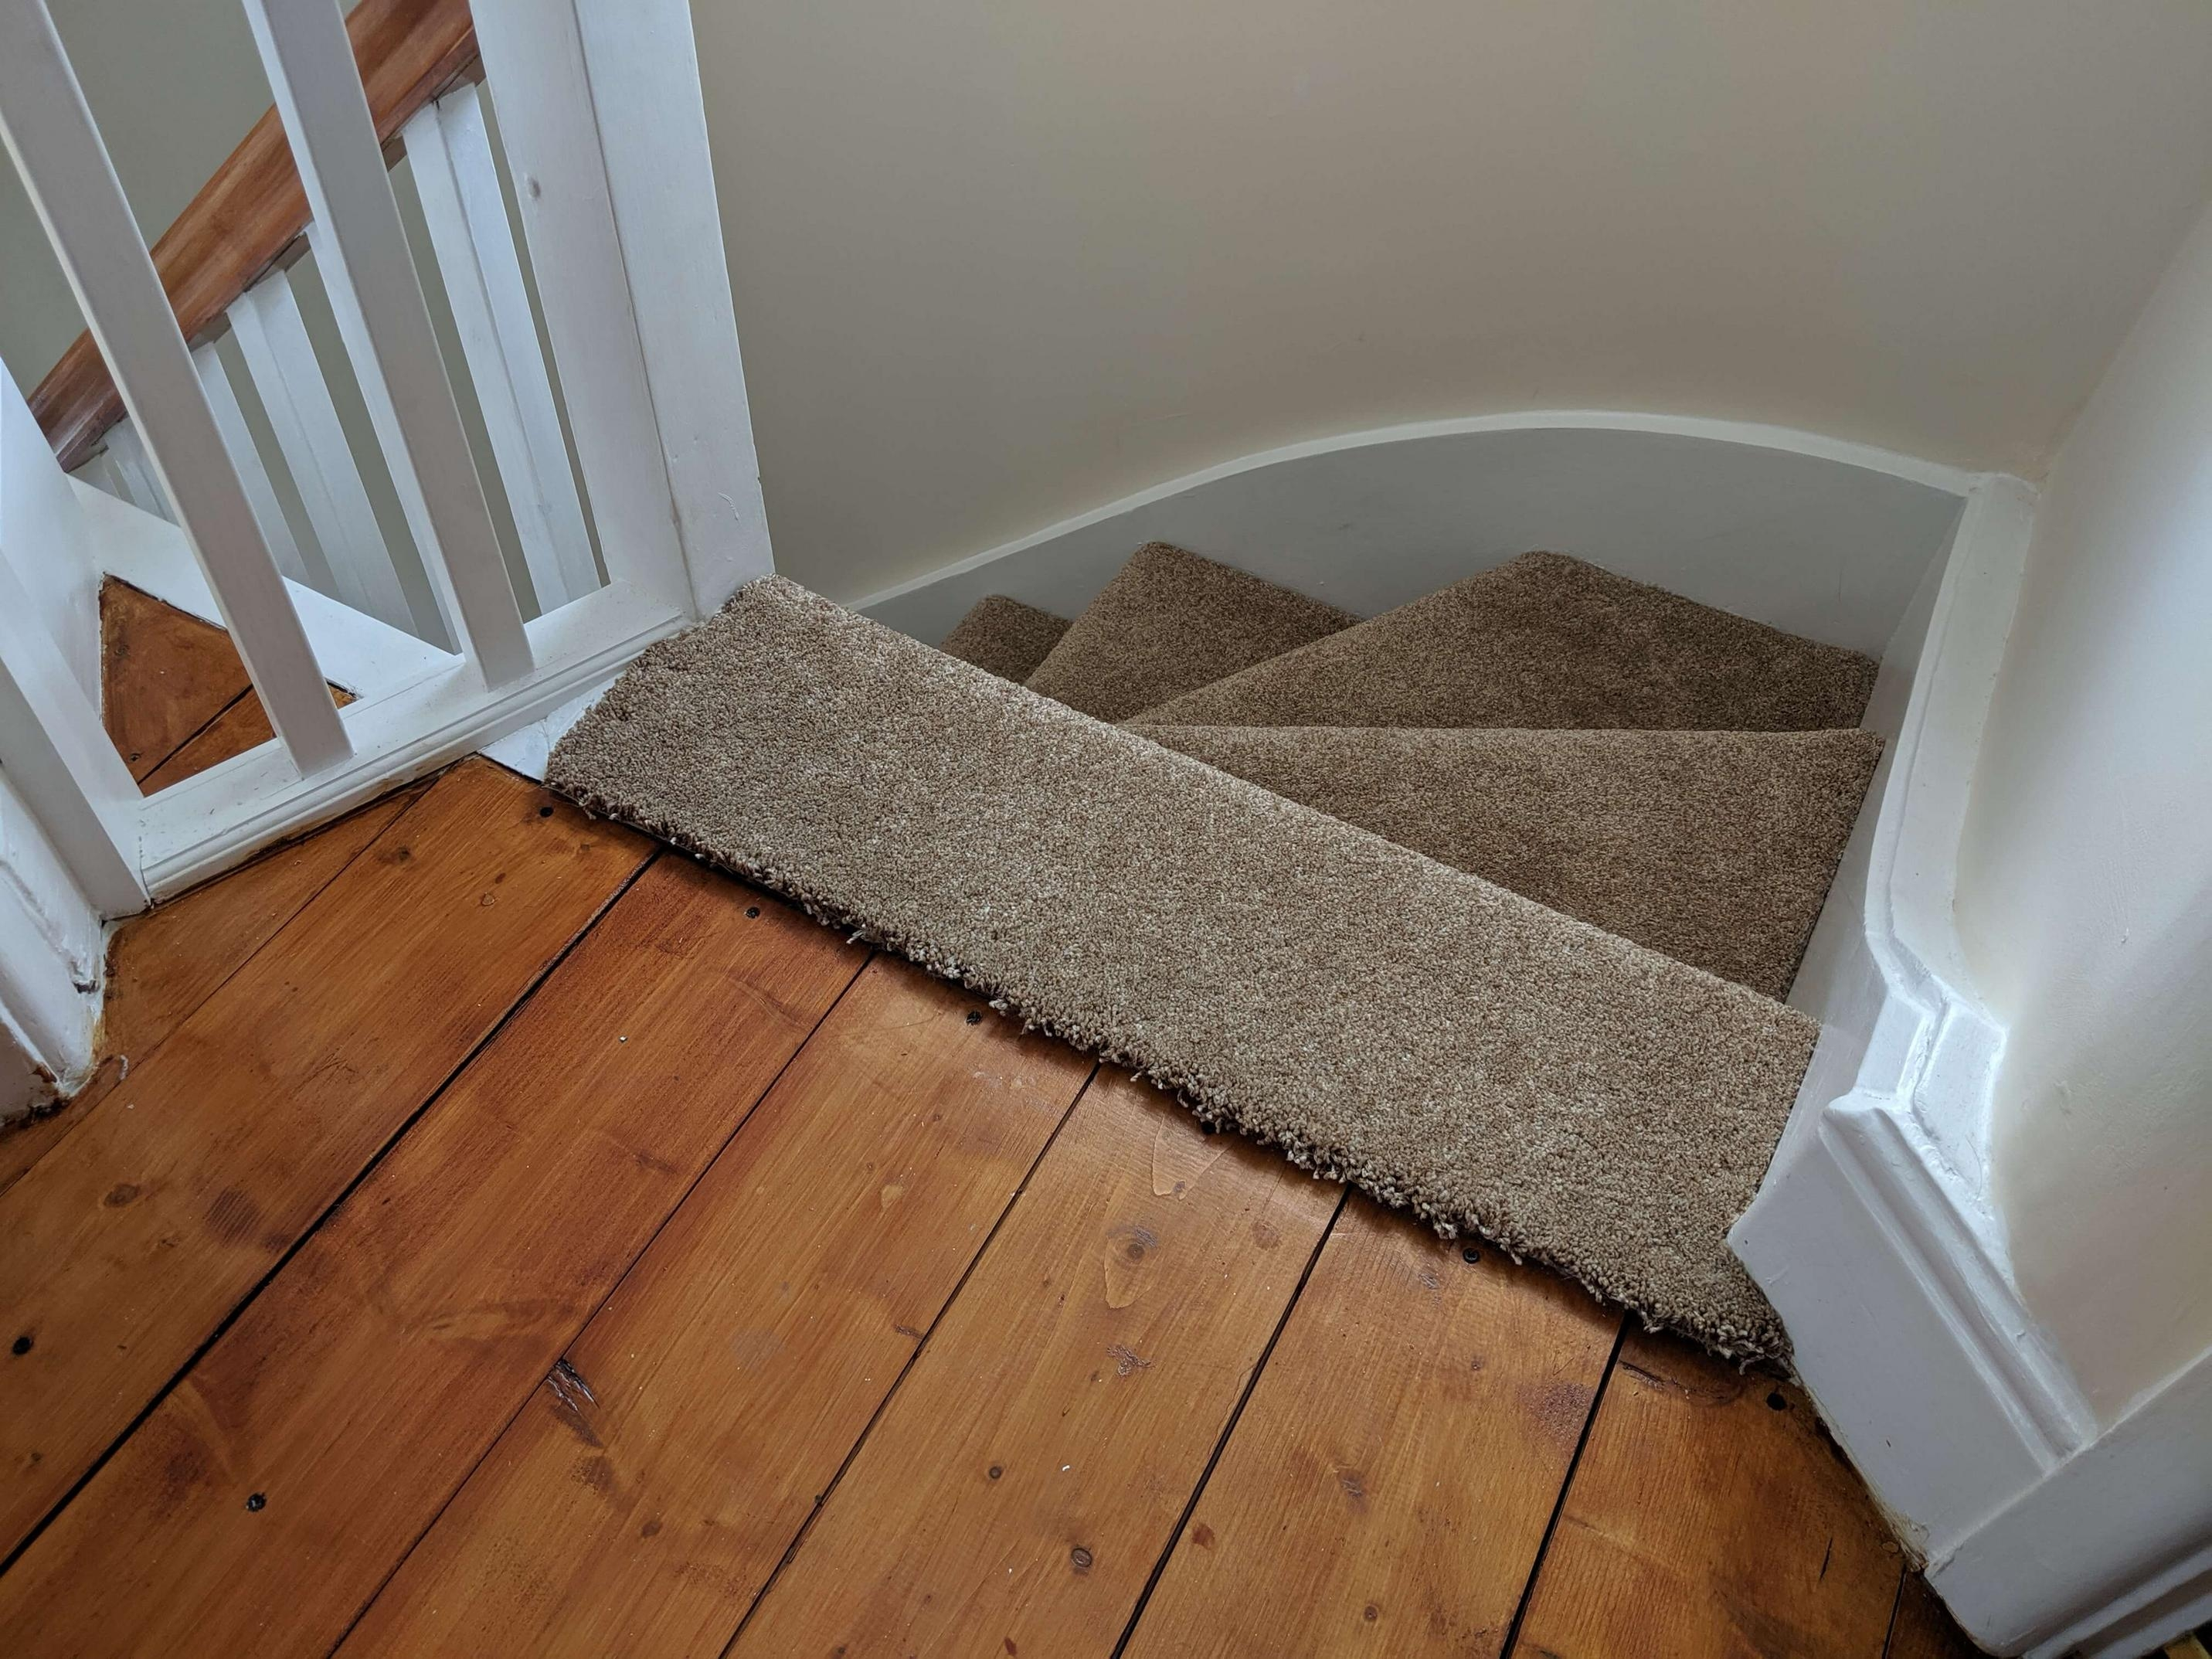 Which Style Transition Threshold Do I Need For Carpeted Stairs To | Hardwood Floor To Stair Transition | Porcelain Tile | Molding | Stair Tread | Vinyl Plank | Carpeted Stairs